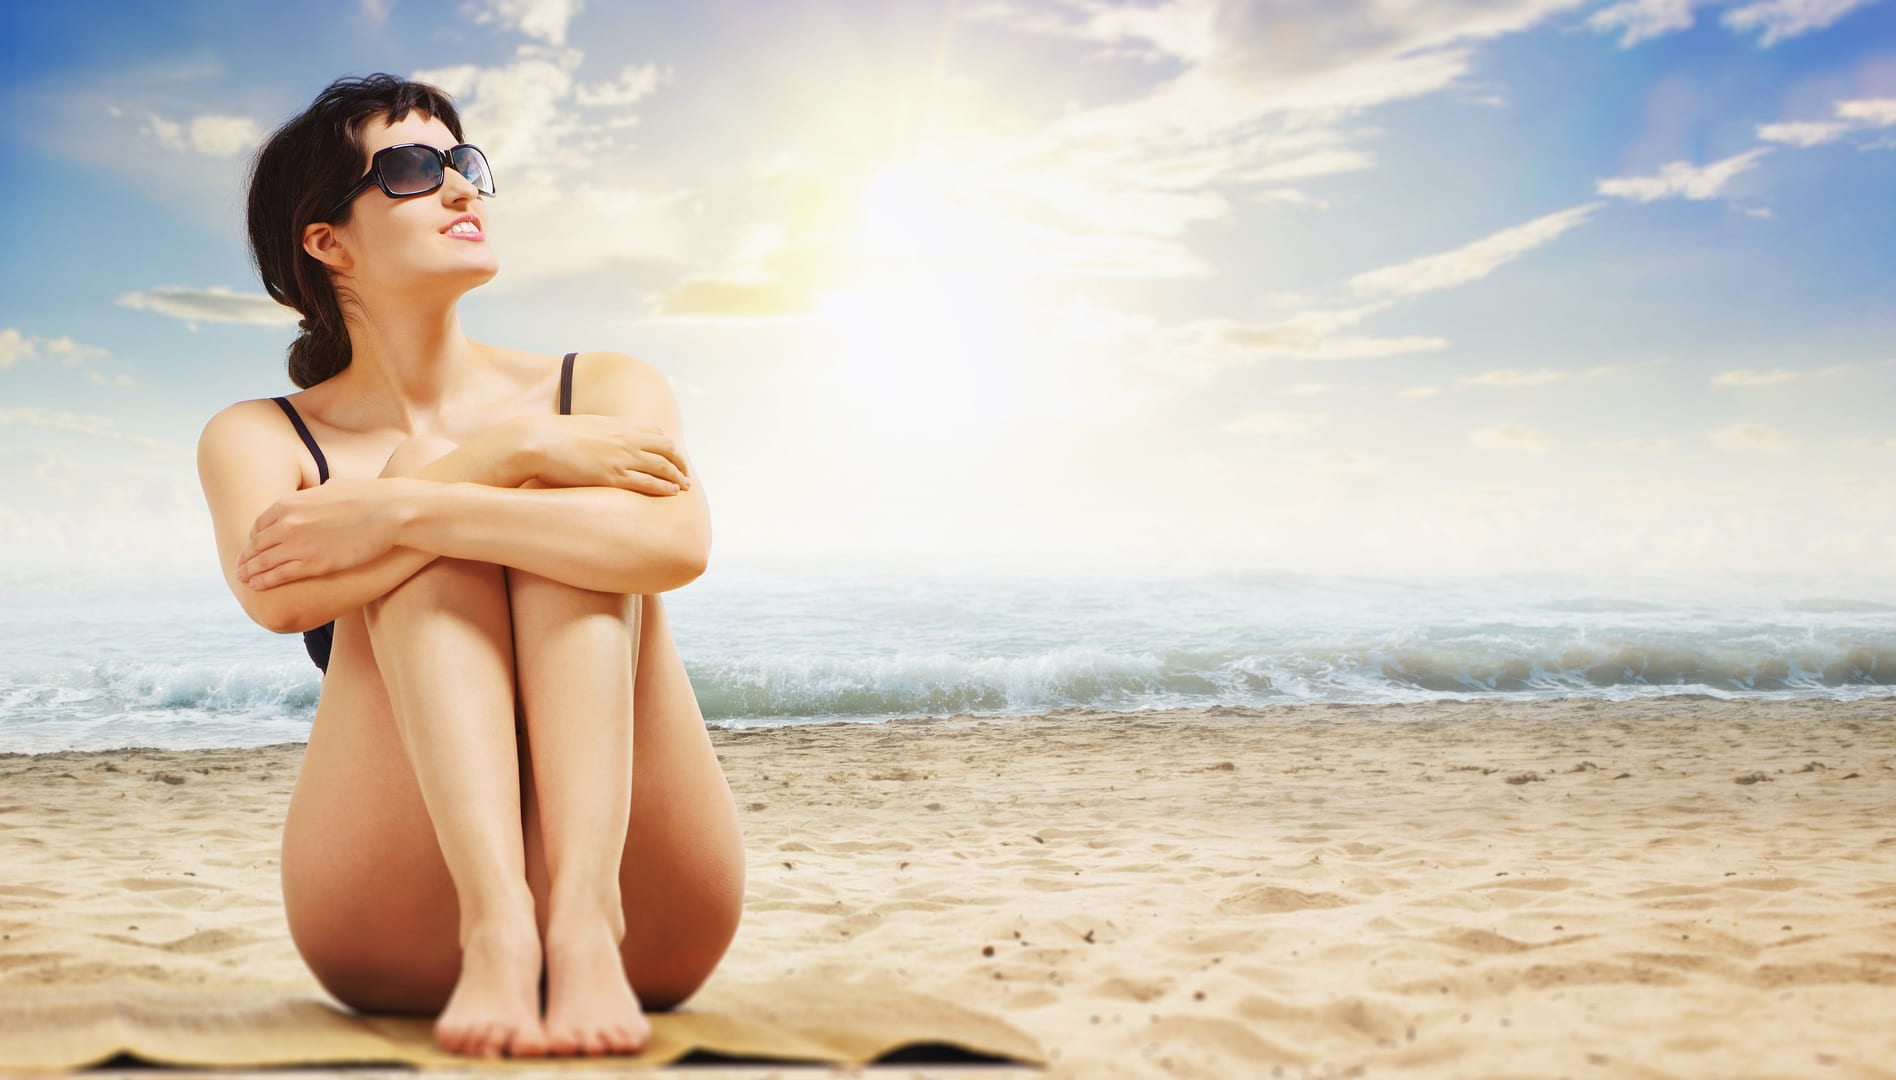 Woman enjoying a day at the beach. Mosaic Spa can help protect your summer skin.